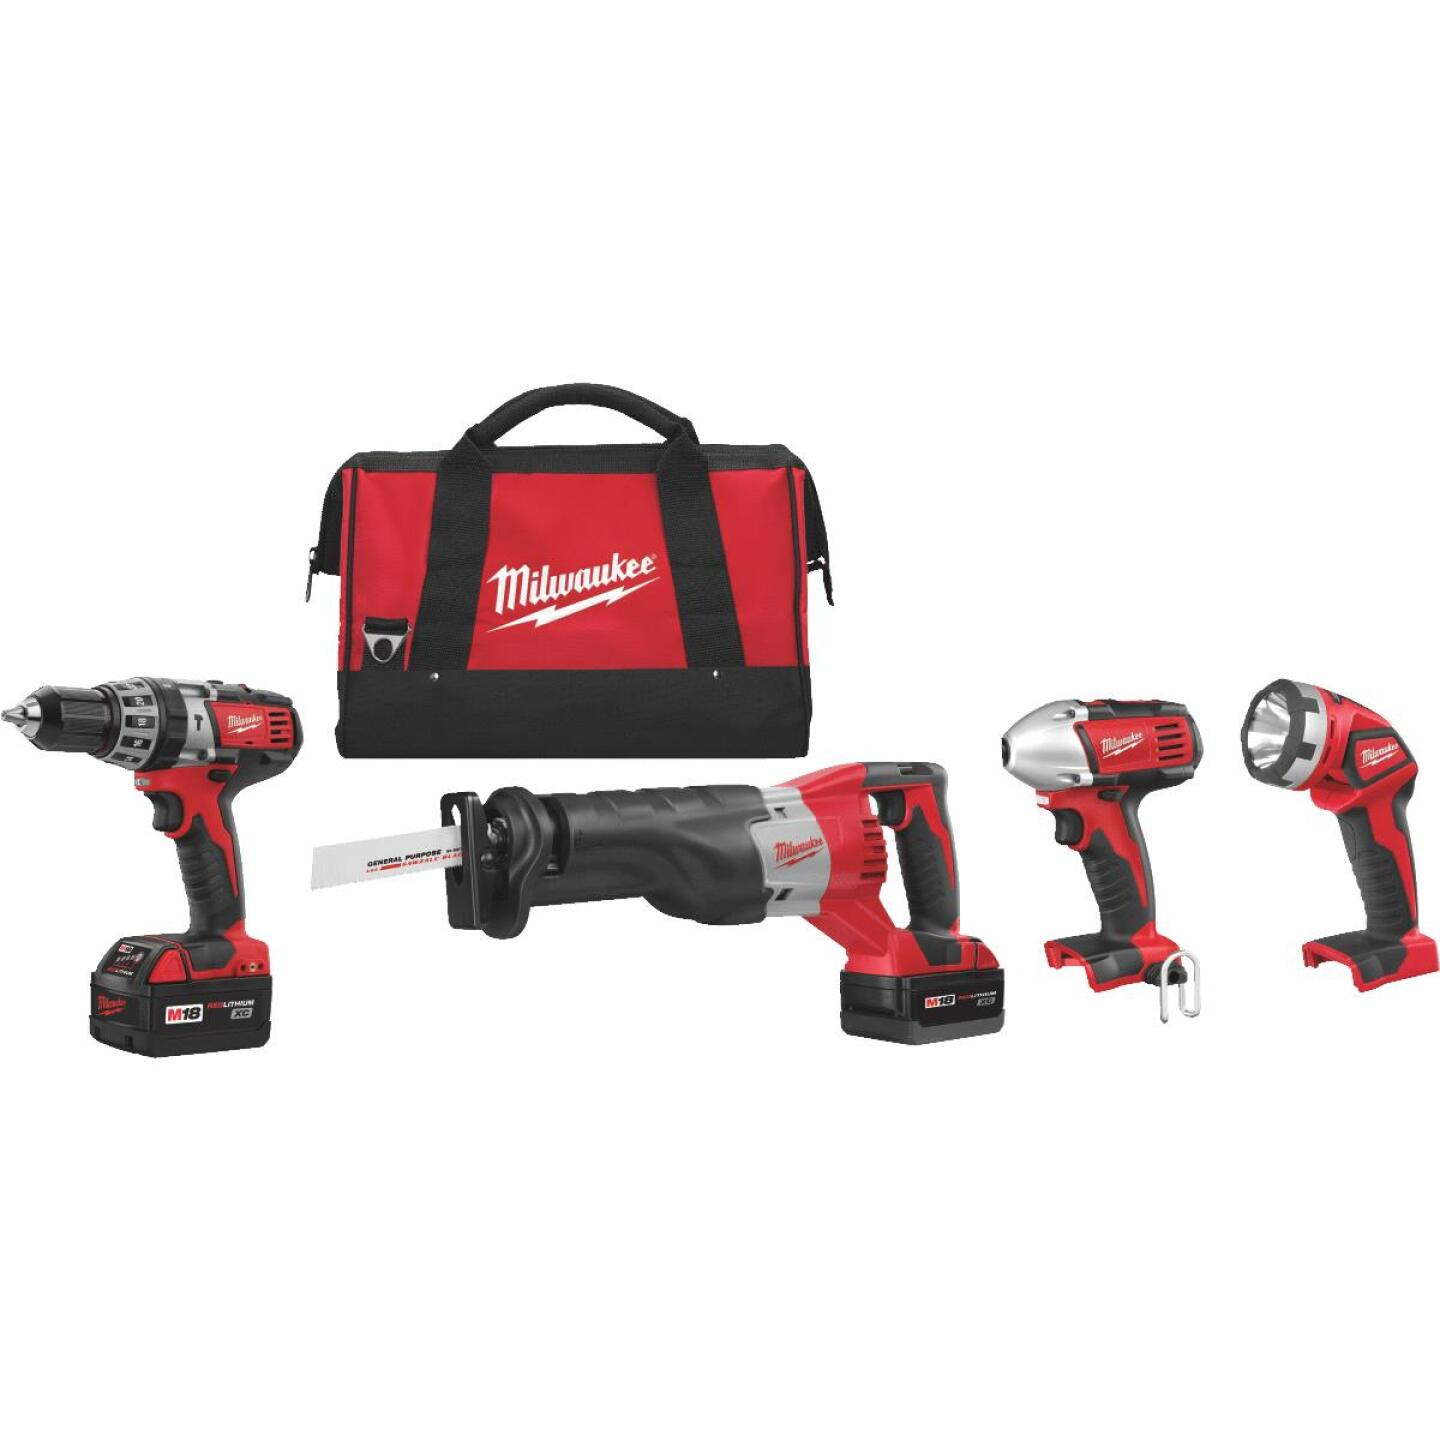 Milwaukee 4-Tool M18 Lithium-Ion Hammer Drill, Reciprocating Saw, Impact Driver & Work Light Cordless Tool Combo Kit Image 1